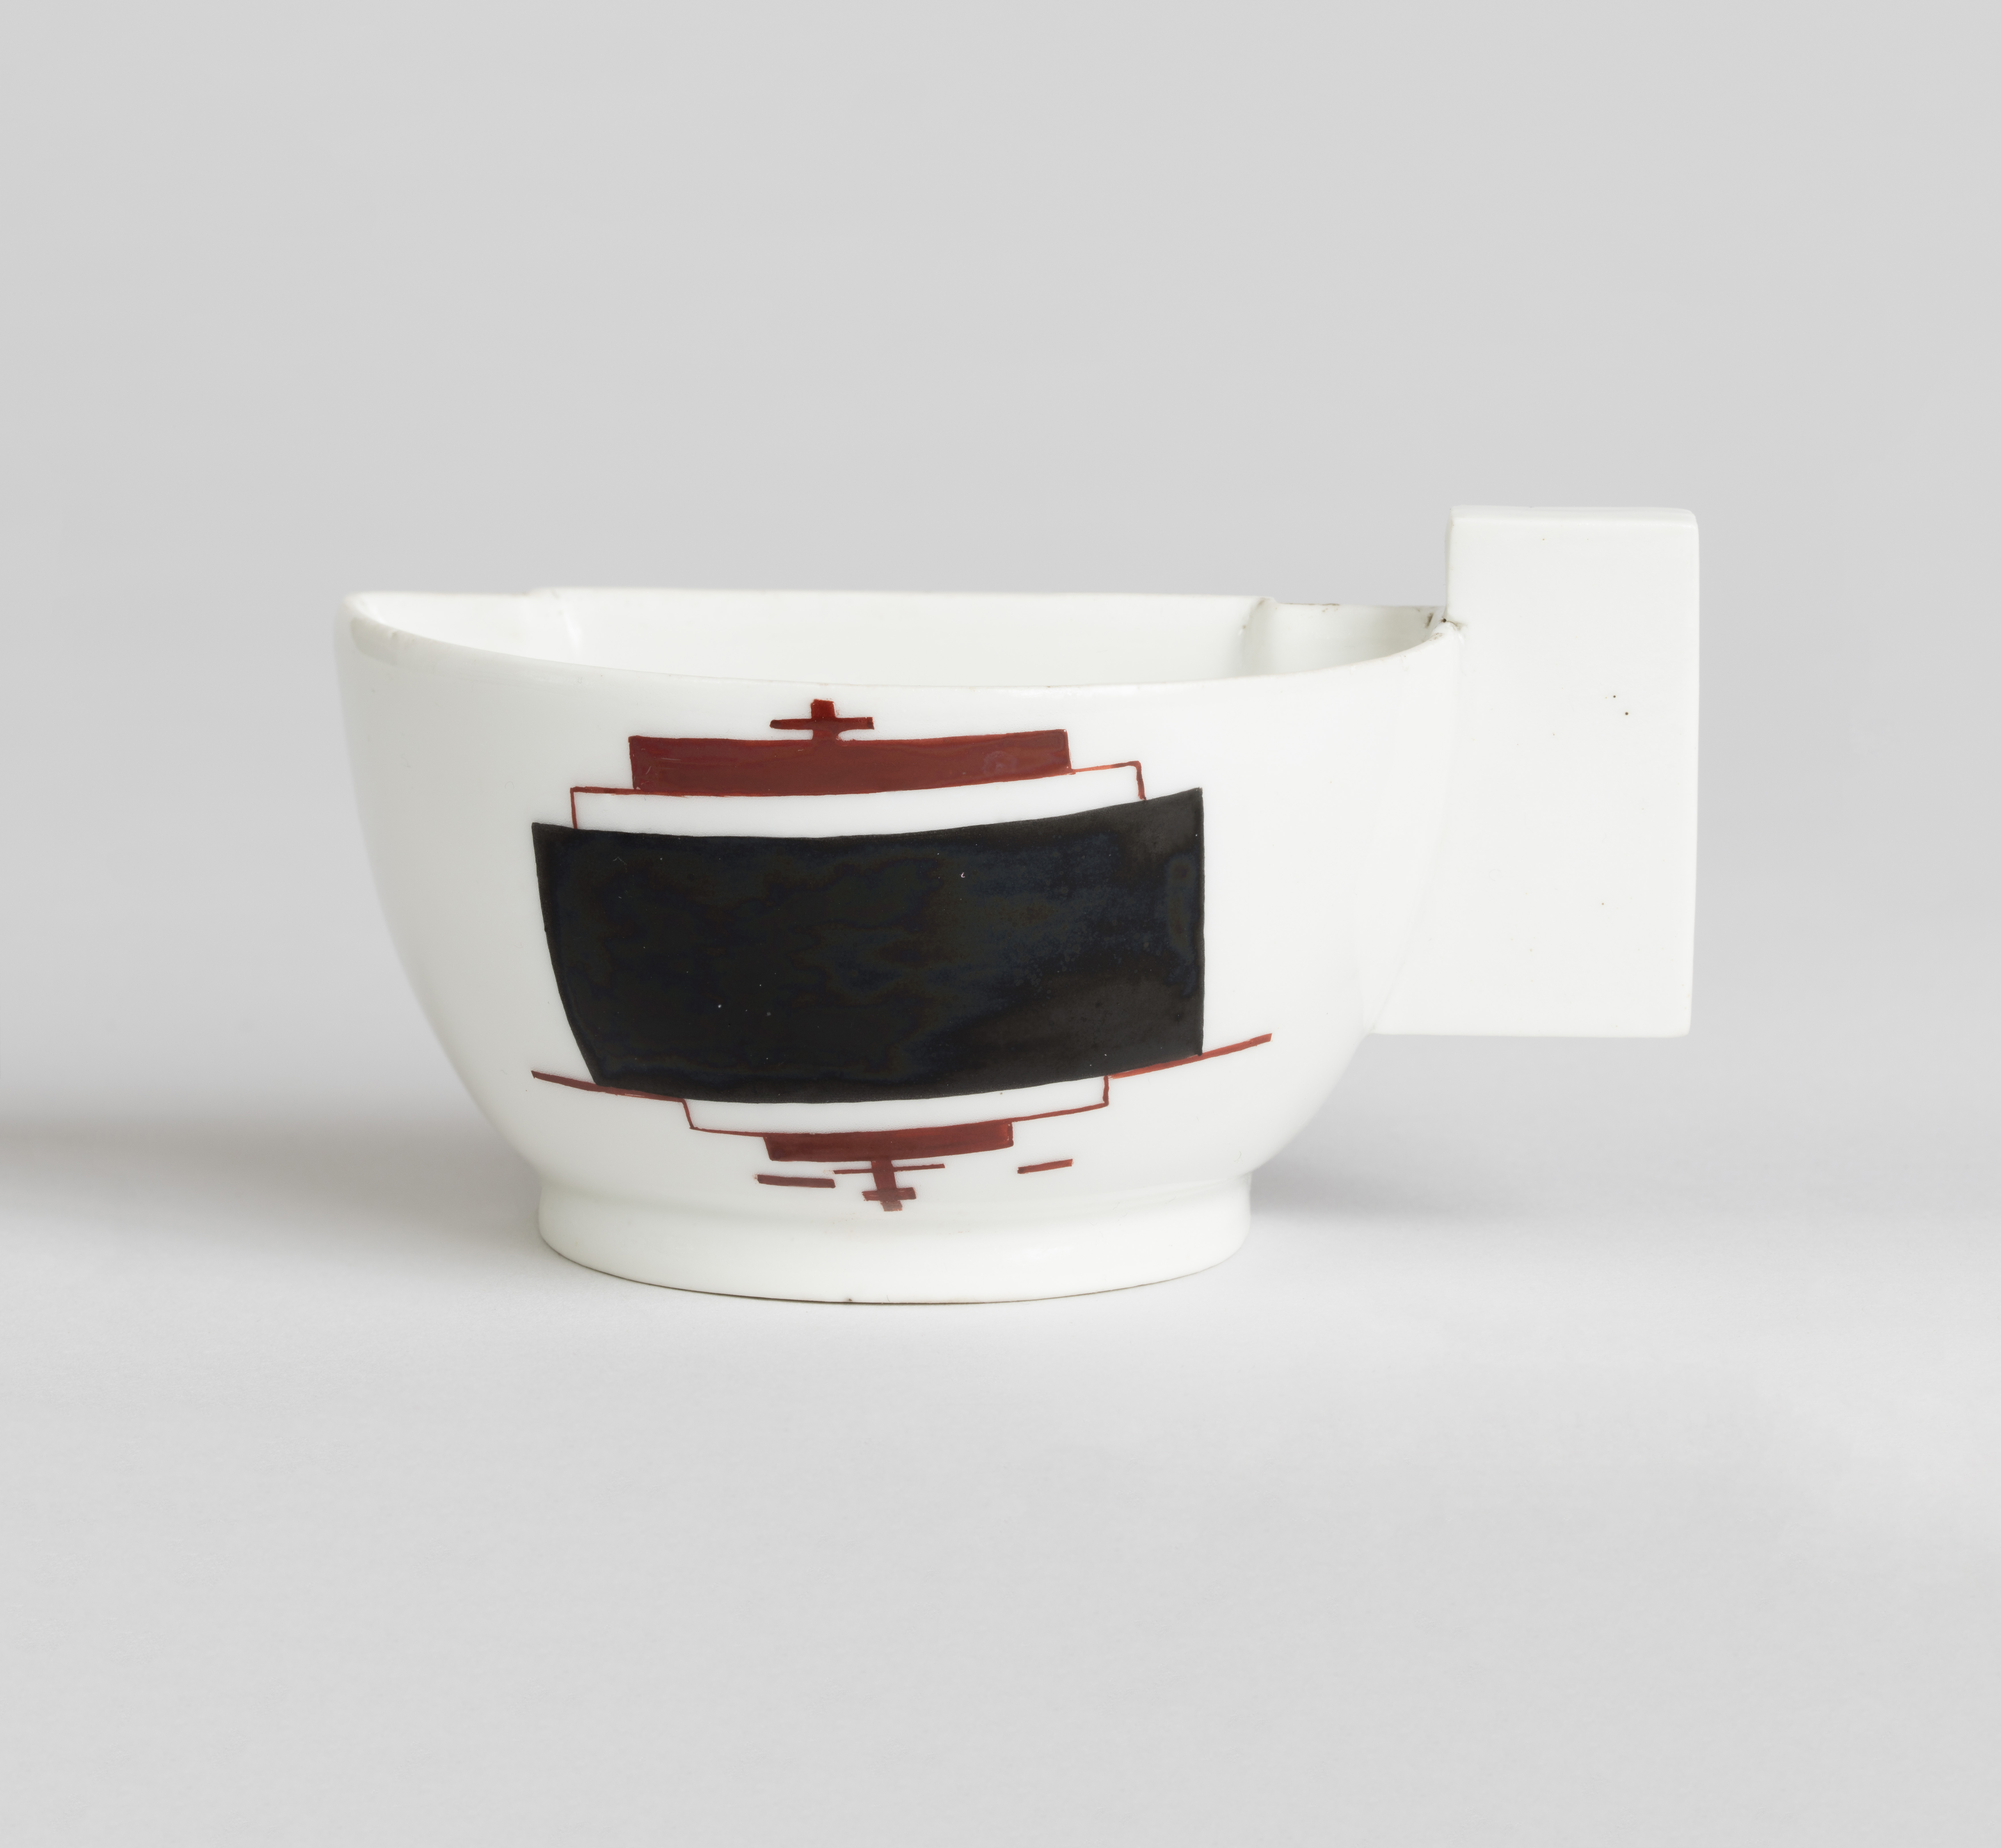 Kazimir Malevich and Ilya Chashnik, Half Teacup, 1923, made by the State Porcelain Manufactory (former Imperial Manufactory), Petrograd, enameled, glazed and molded porcelain. Cooper Hewitt, Smithsonian Design Museum, The Henry and Ludmilla Shapiro Collection; partial gift and partial purchase through the Decorative Arts Association Acquisition and Smithsonian Collections Acquisition Program Funds. Image provided by Cooper Hewitt, Smithsonian Design Museum / Art Resource, NY